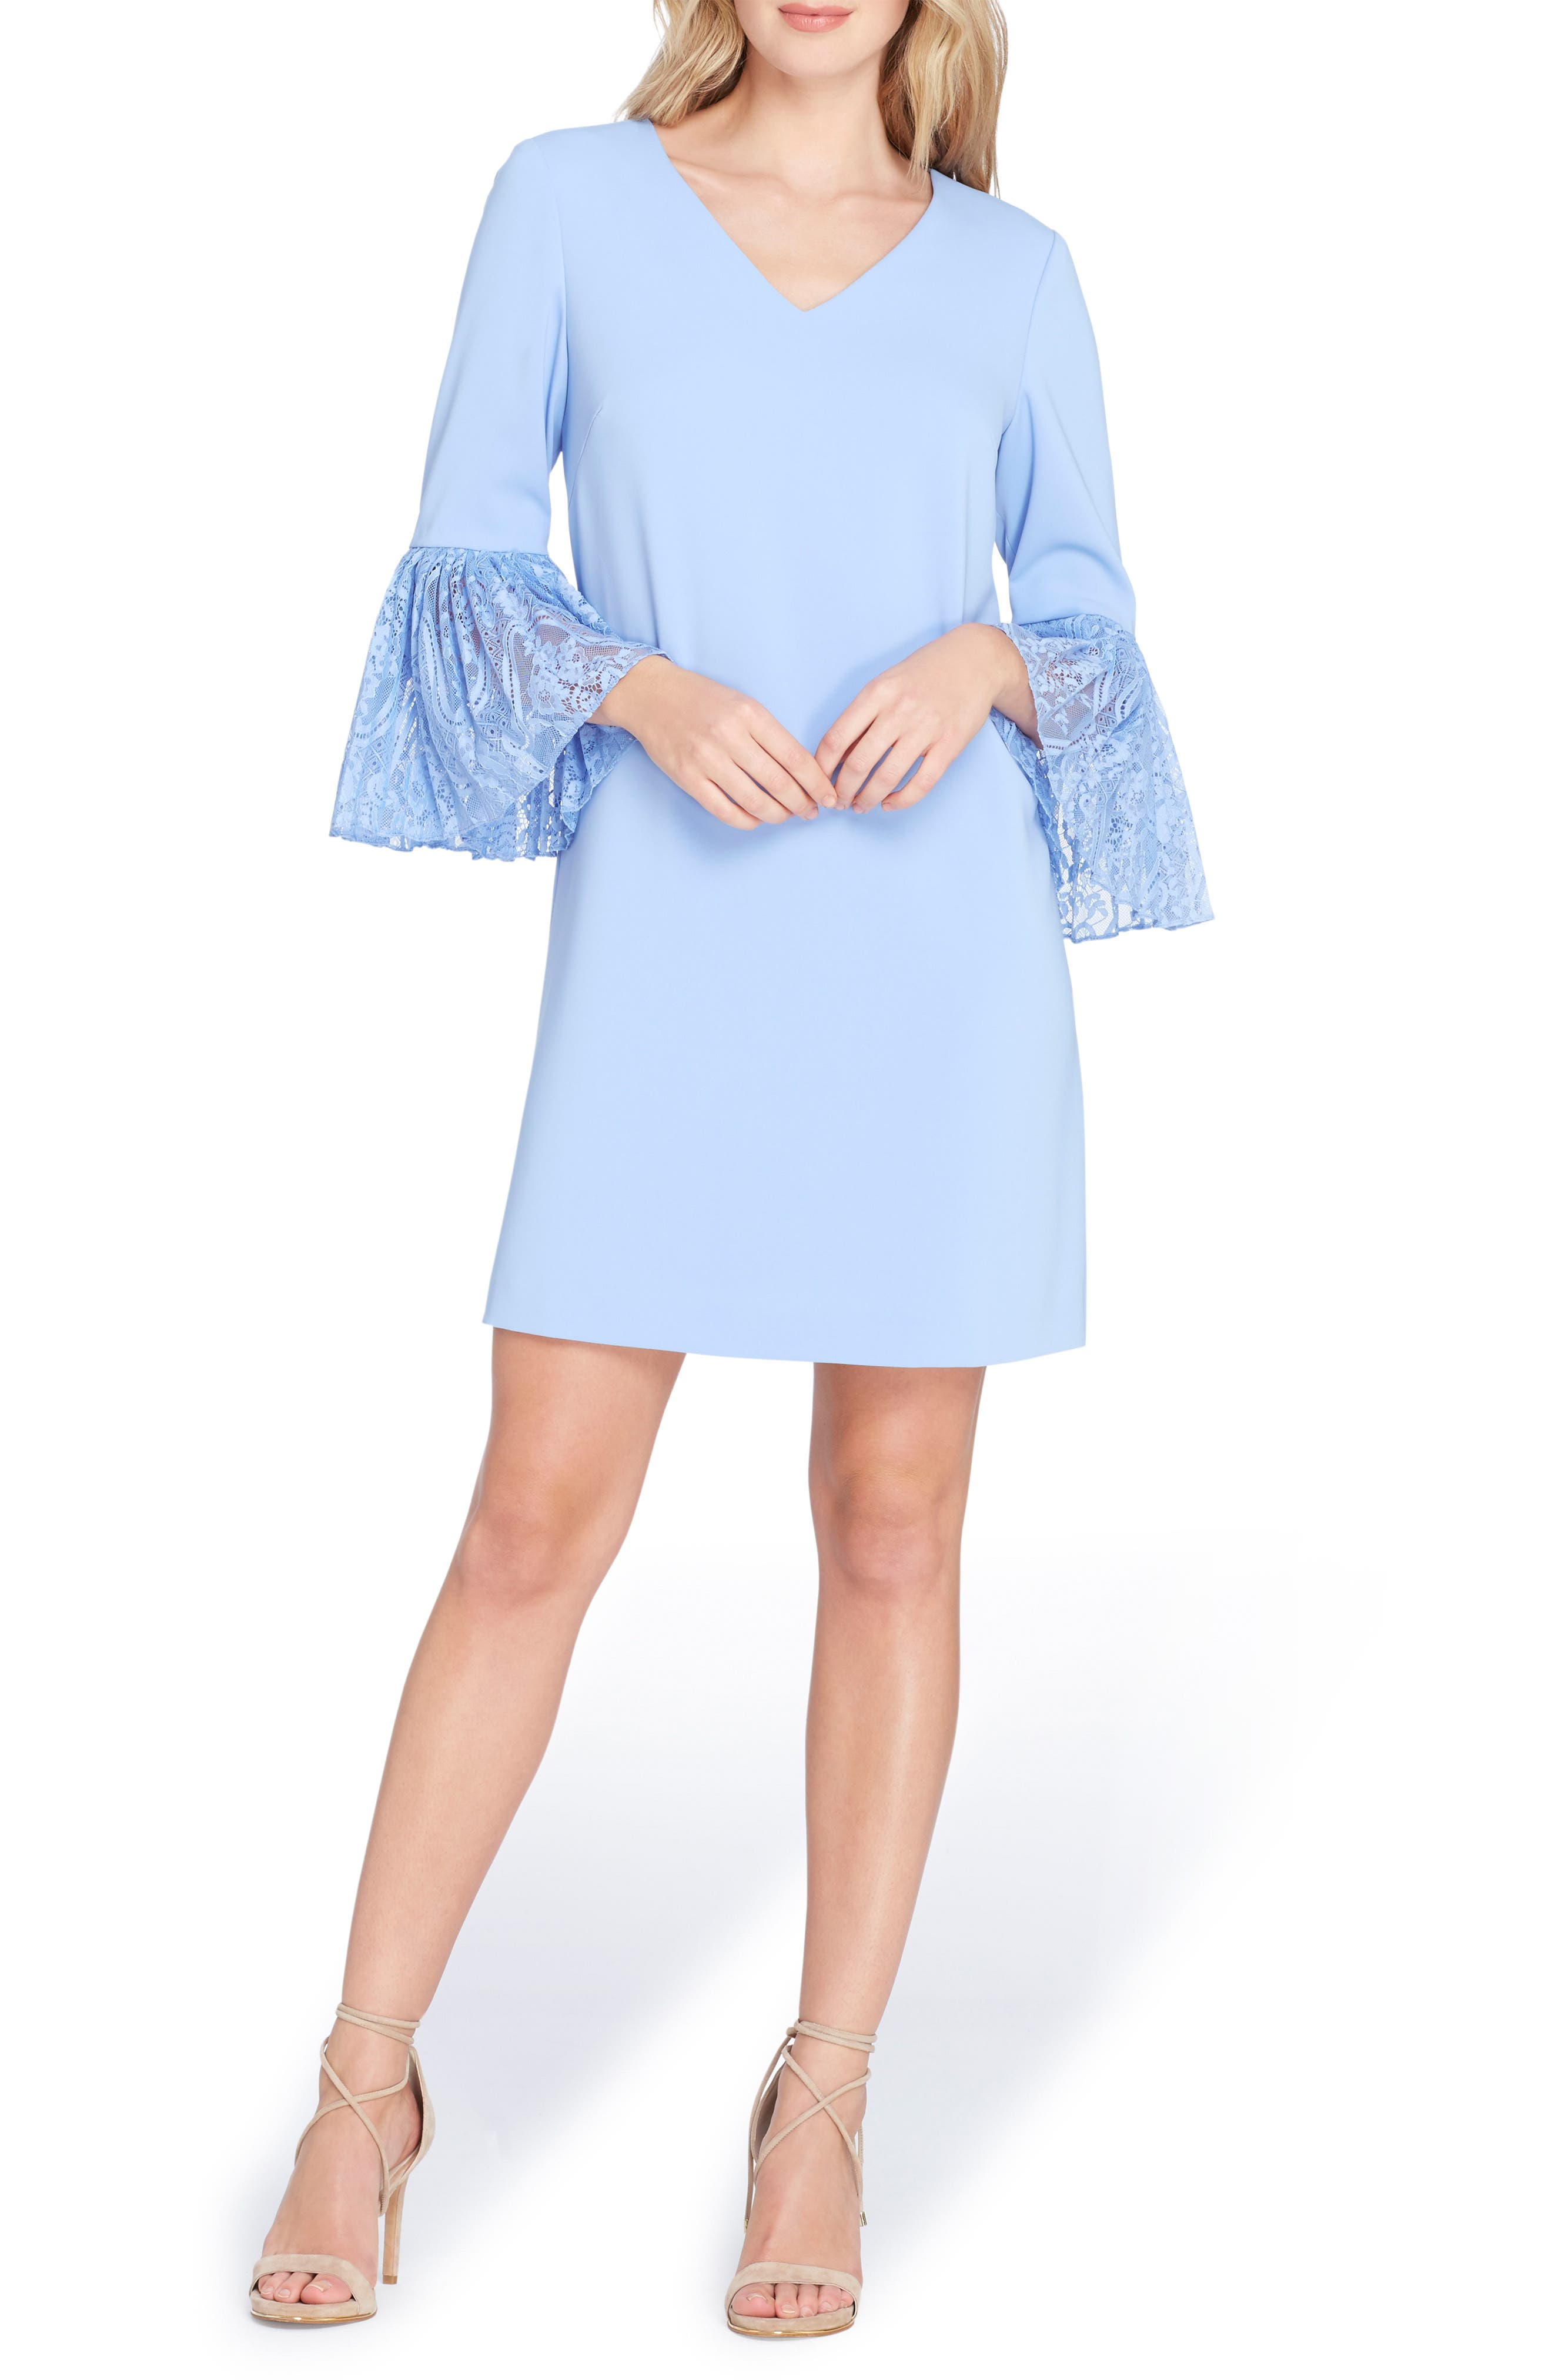 Bell Sleeve Shift Dress,                             Main thumbnail 1, color,                             Periwinkle